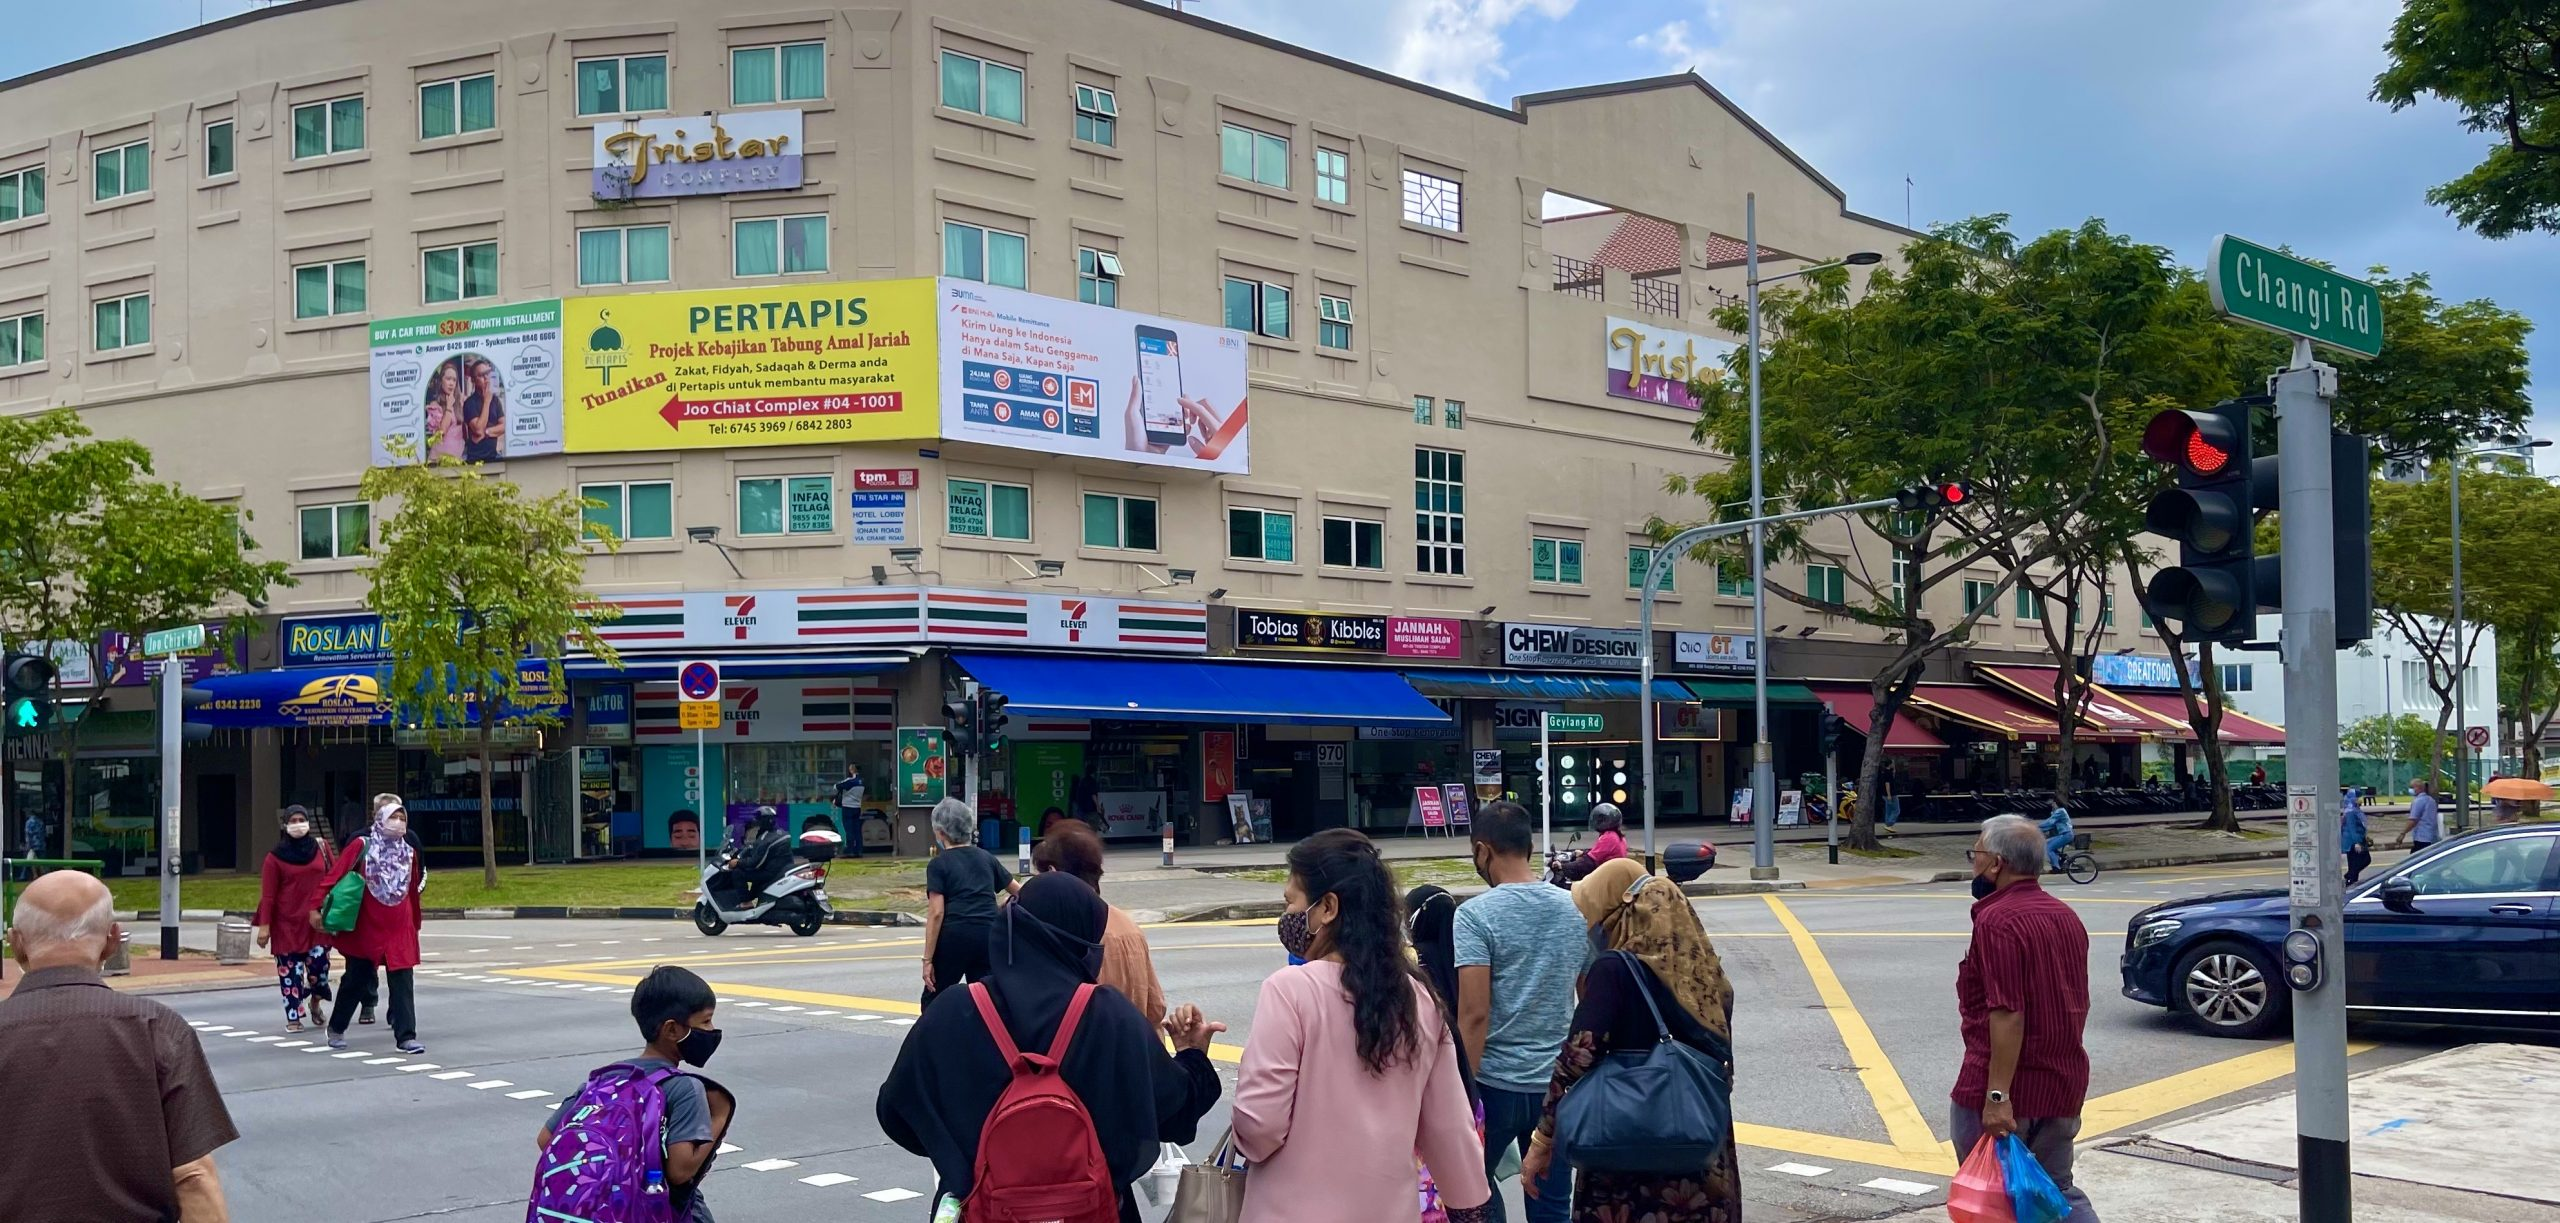 How to Strategise the Location of Your Outdoor Advertisement